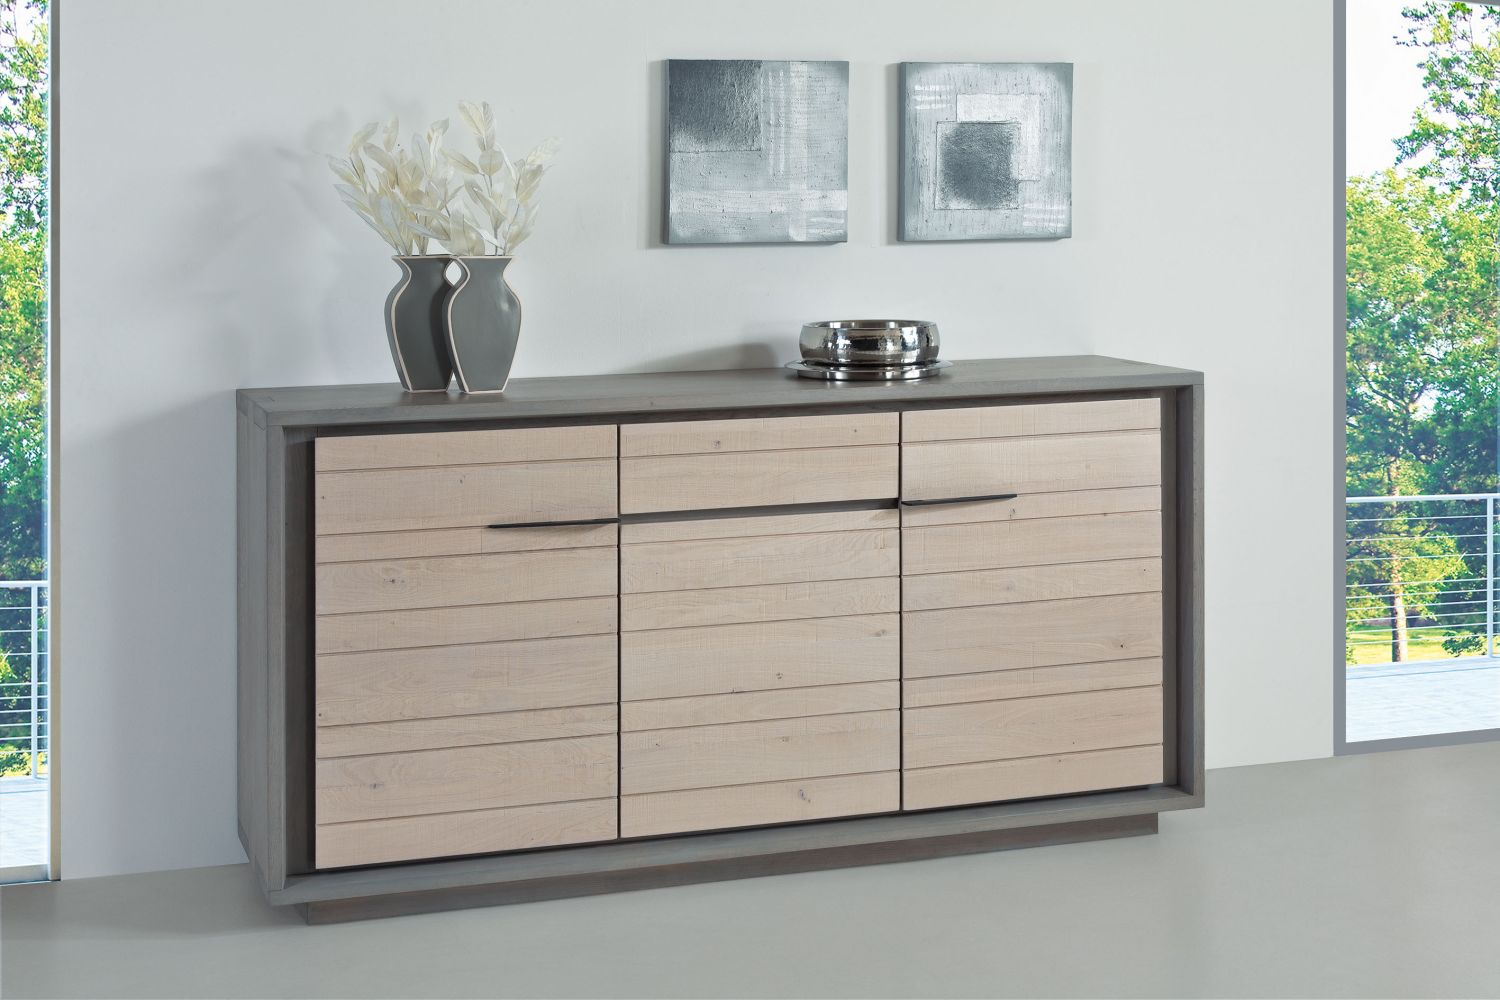 salle manger contemporaine ateliers de langres zen pieds bois bois deco. Black Bedroom Furniture Sets. Home Design Ideas